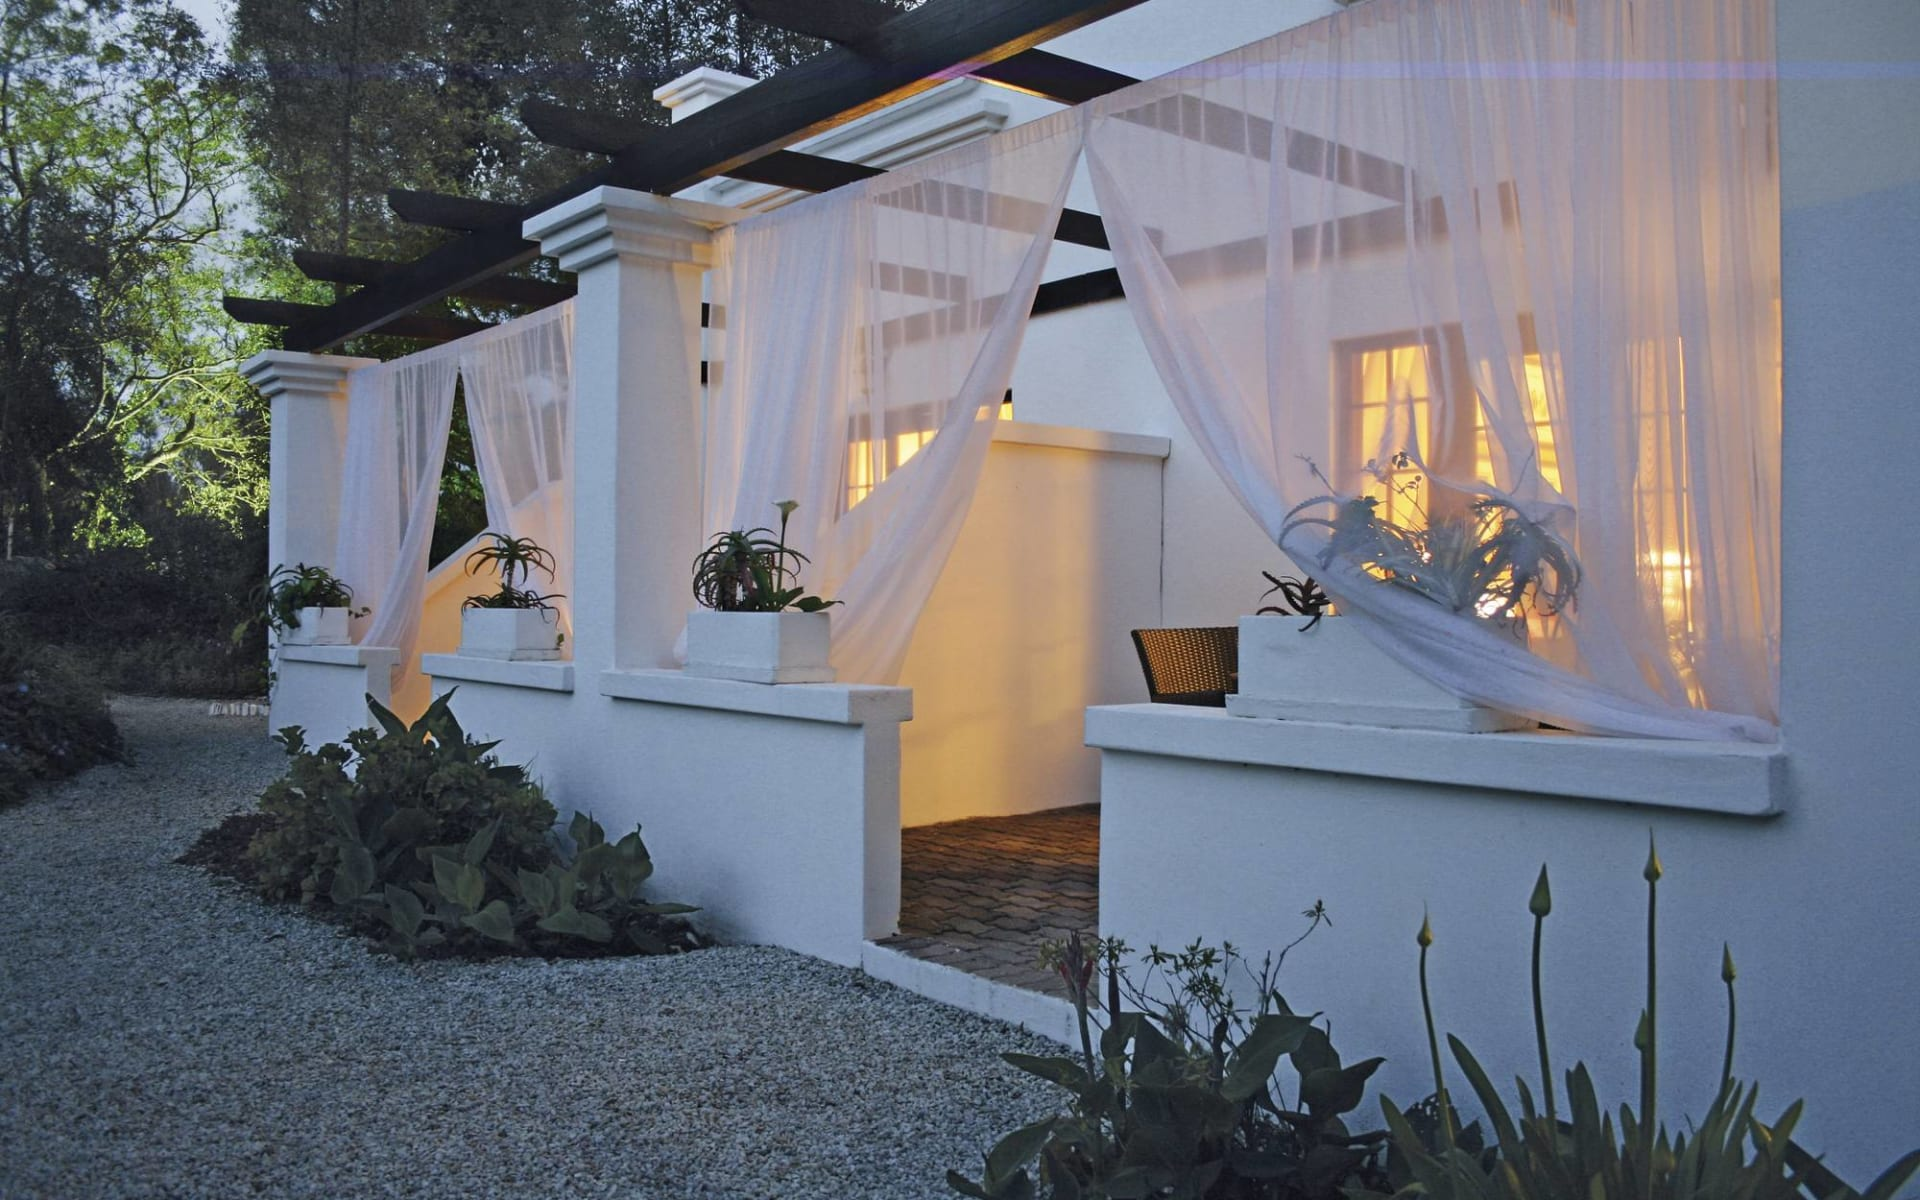 Lairds Lodge Country Estate in Plettenberg Bay:  Lairds Lodge